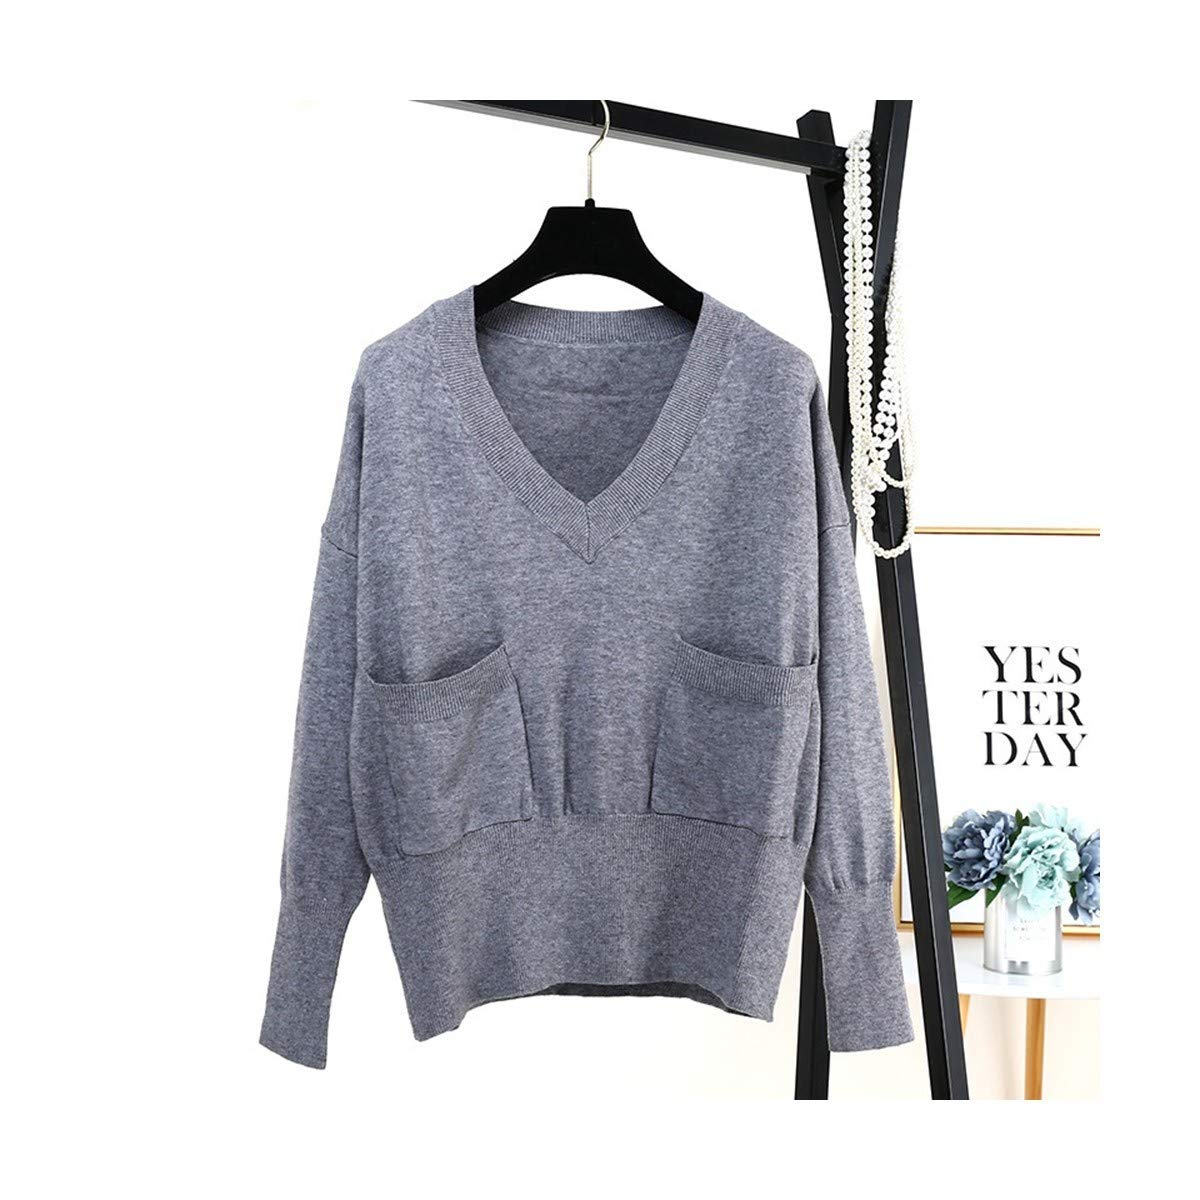 BRNEBN Autumn Women V-Neck Sweater Pullover Sweaters with Front Pocket Dropped Shoulder Crop Tops